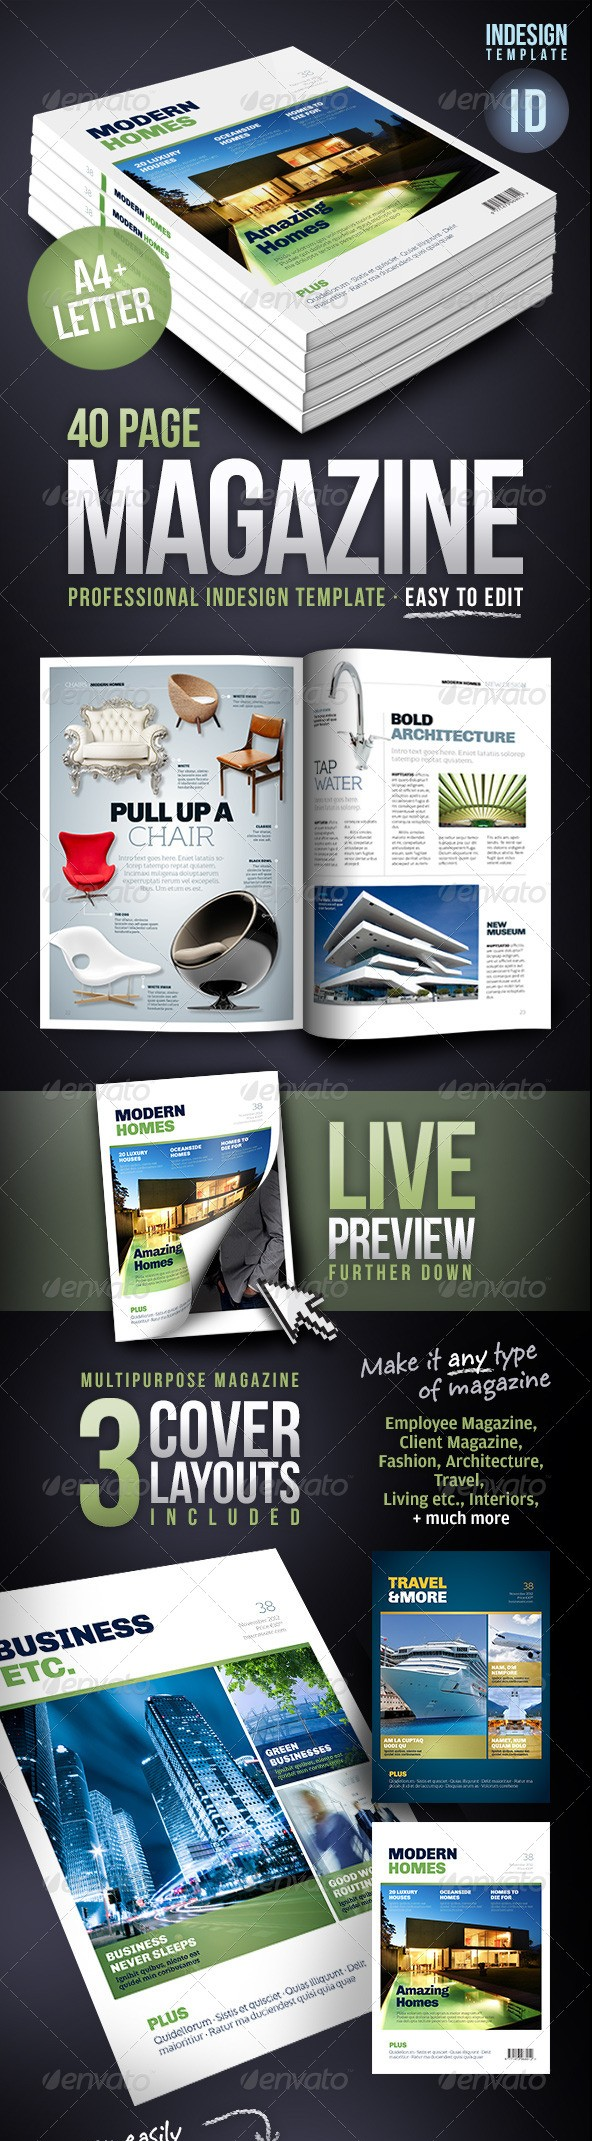 Multipurpose 40 Page Magazine Template - A4 + Letter